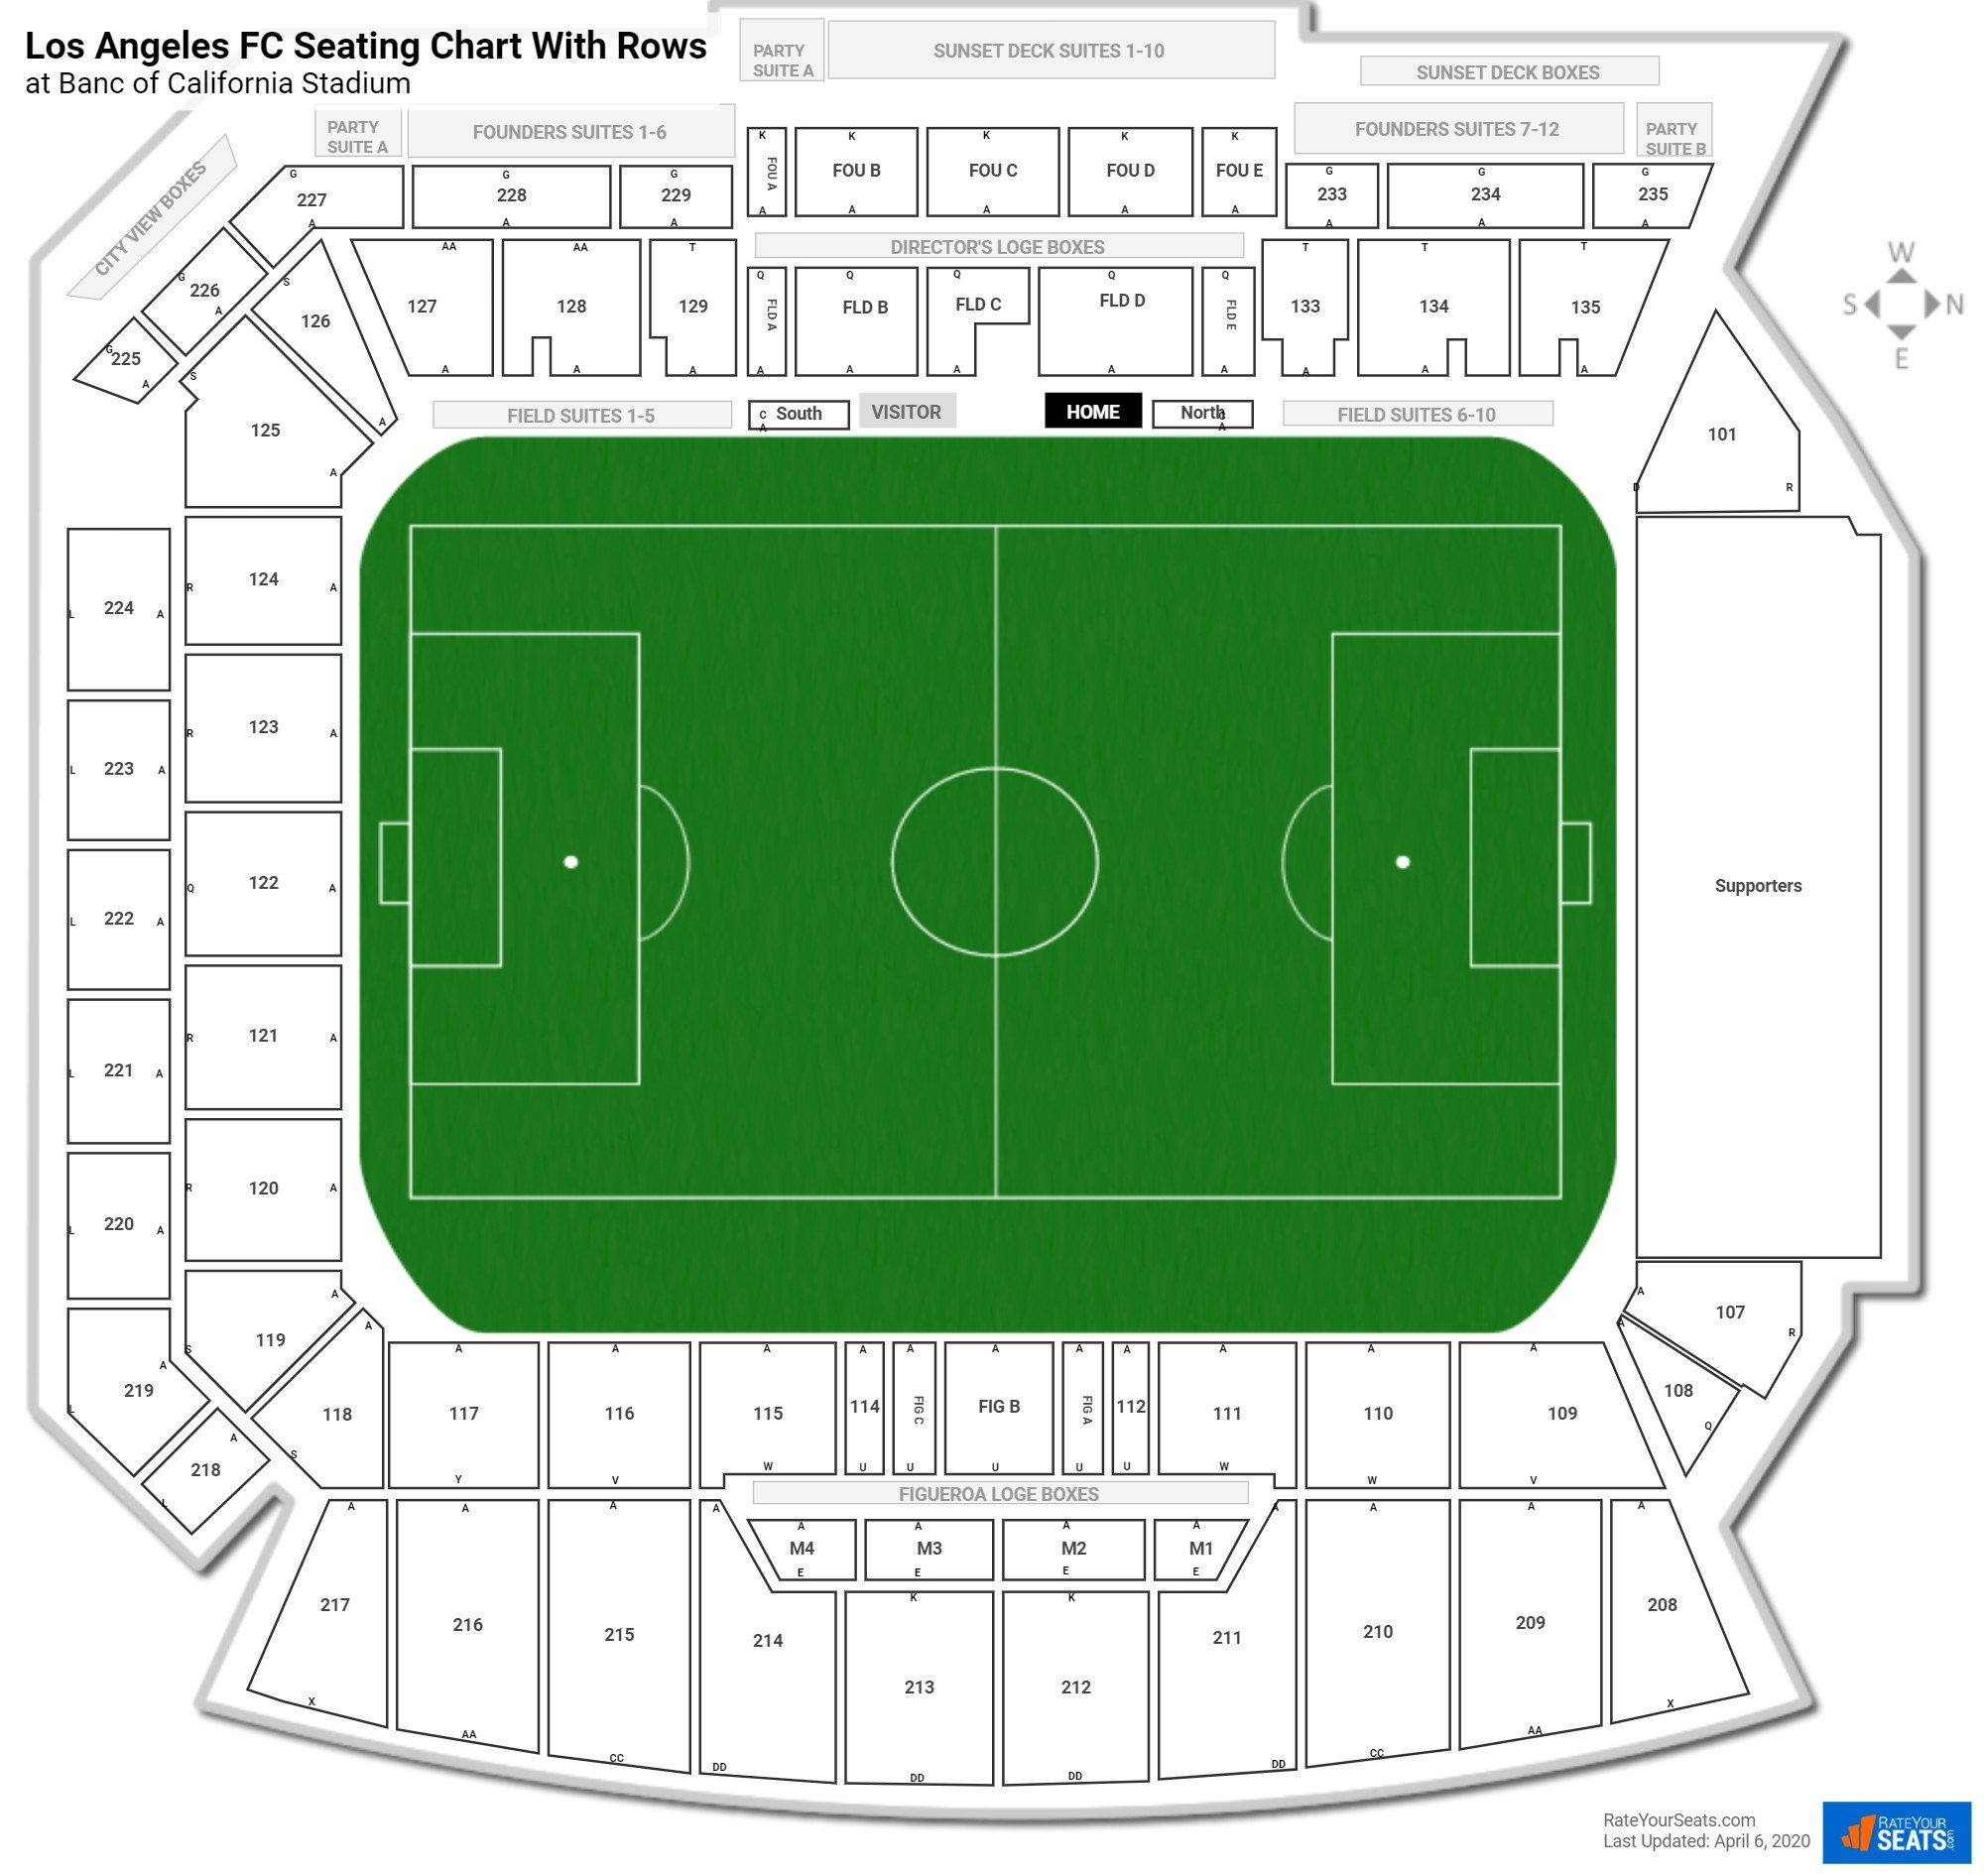 Banc of California Stadium seating chart with rows